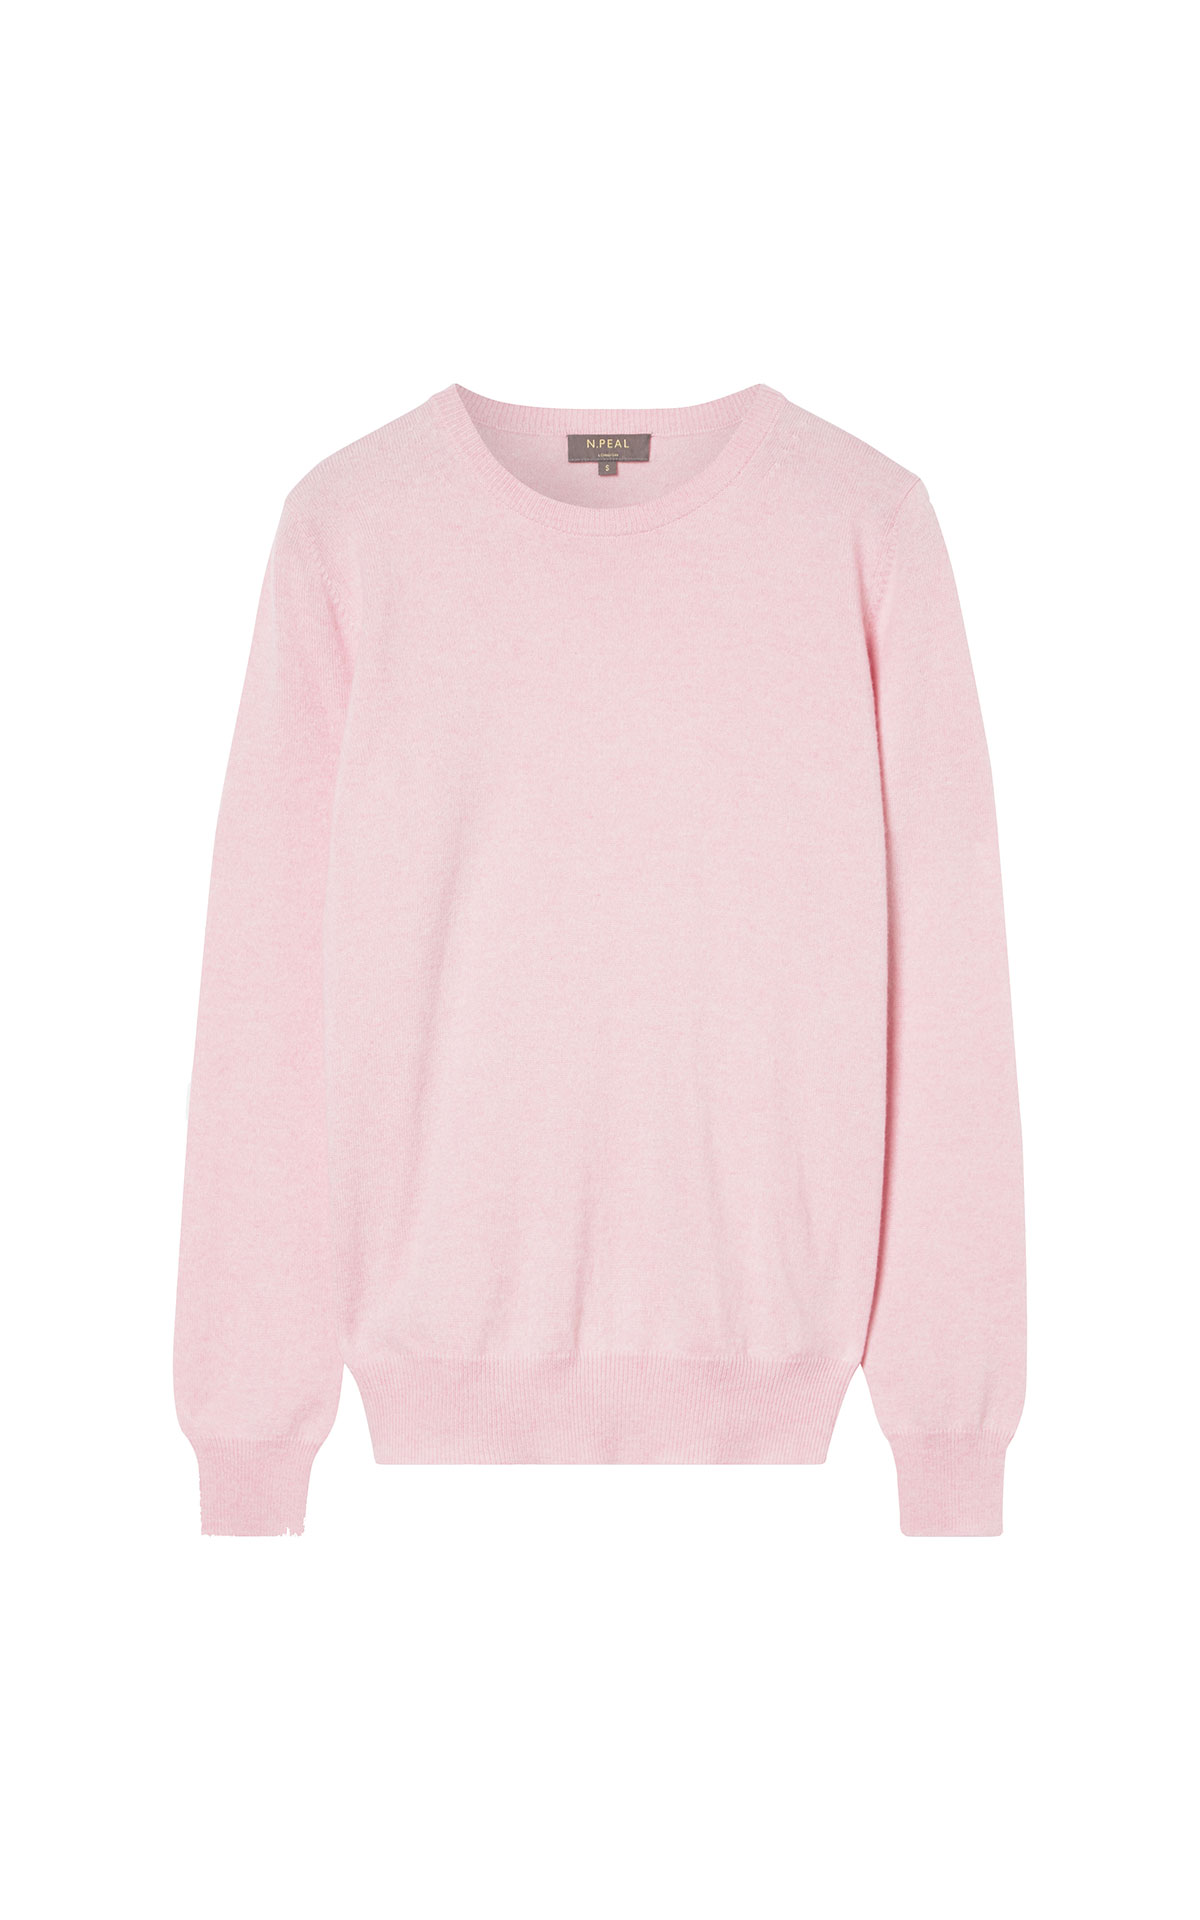 N.Peal Round neck sweater pink from Bicester Village